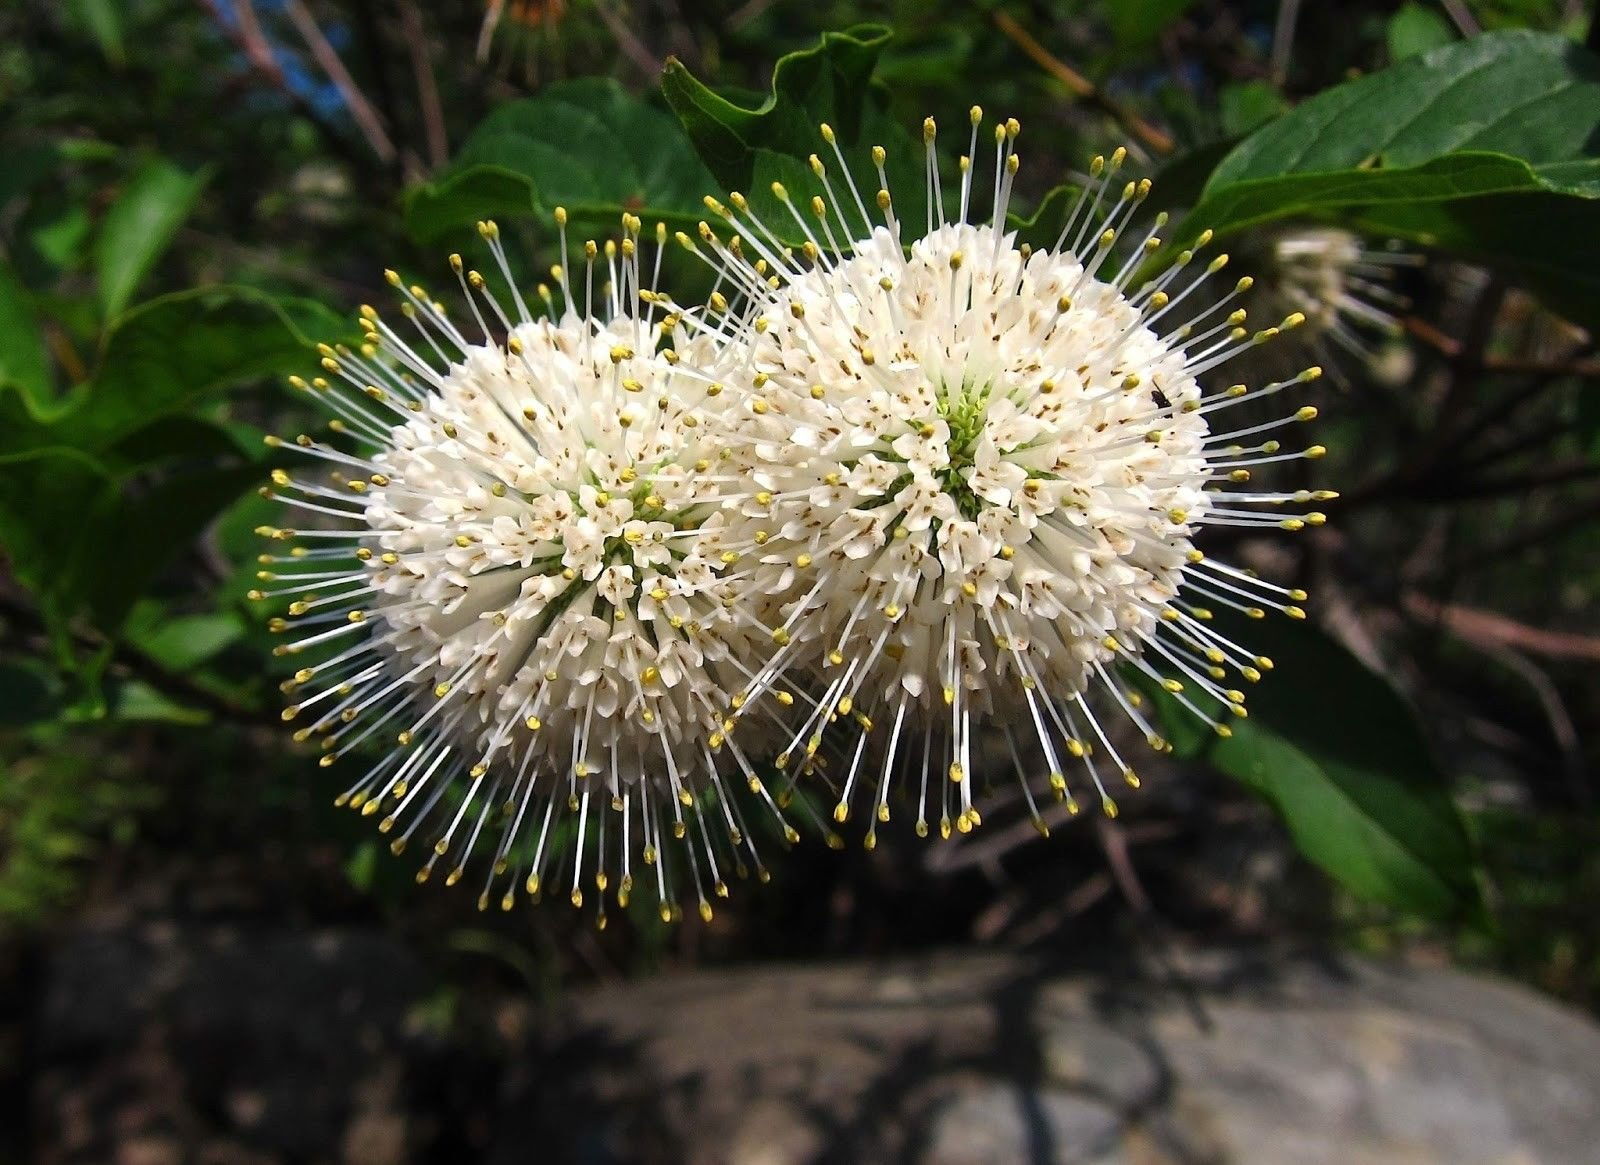 Two (2) Buttonbush (Cephalanthus occidentalis) 1 year old plants well rooted